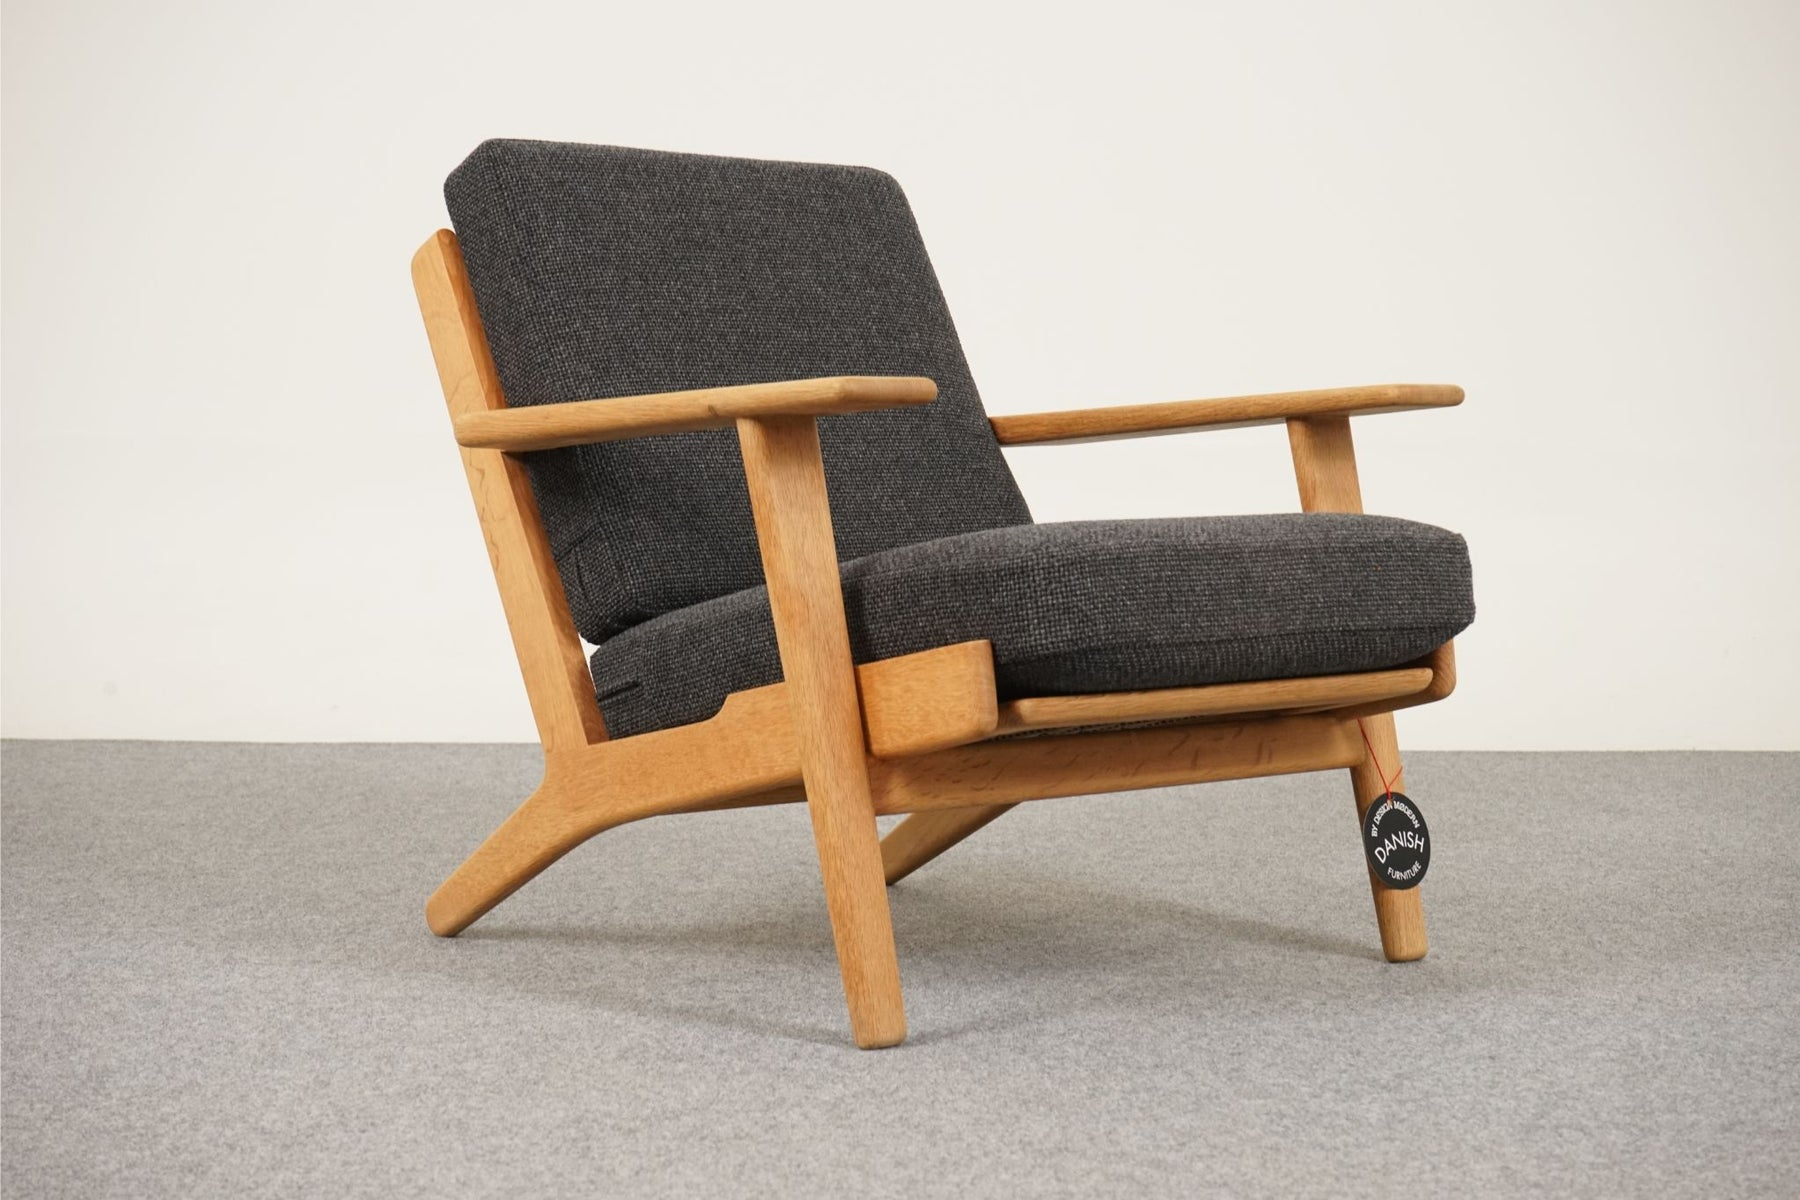 Hans Wegner Danish Modern GE 290 Oak & Wool Lounge Chair by Getama - (313-005.3)